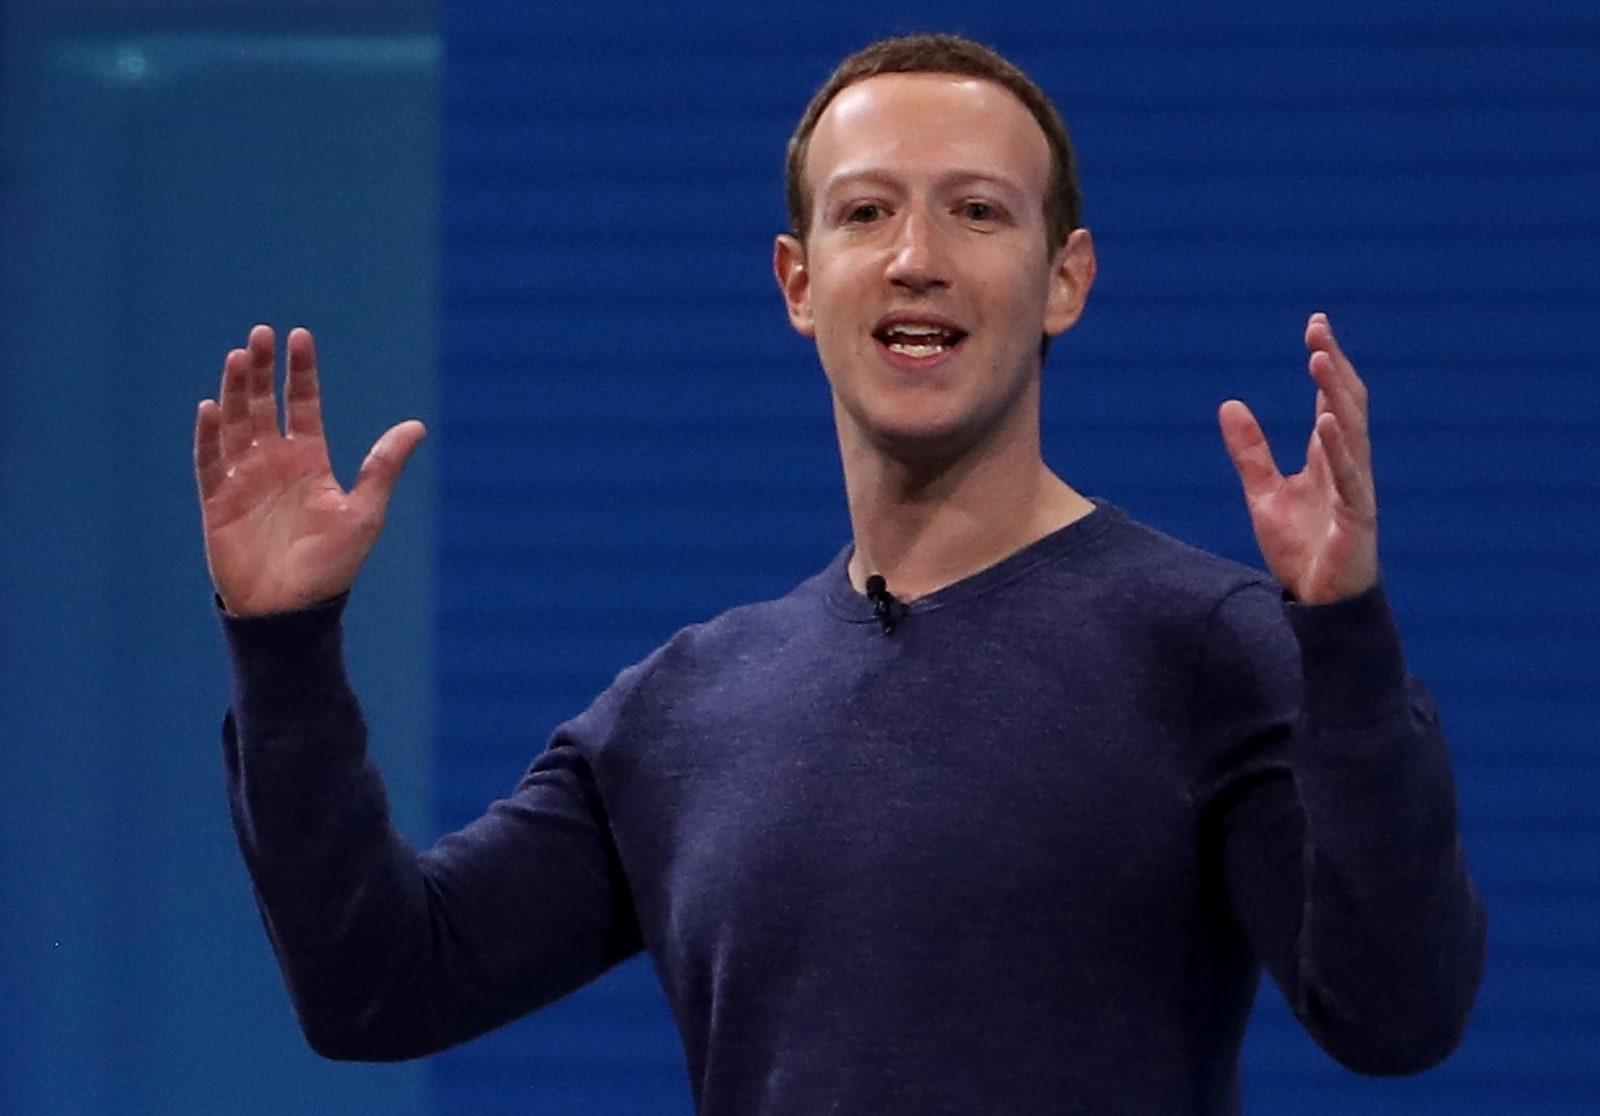 Mark Zuckerberg Addresses F8 Facebook Developer Conference